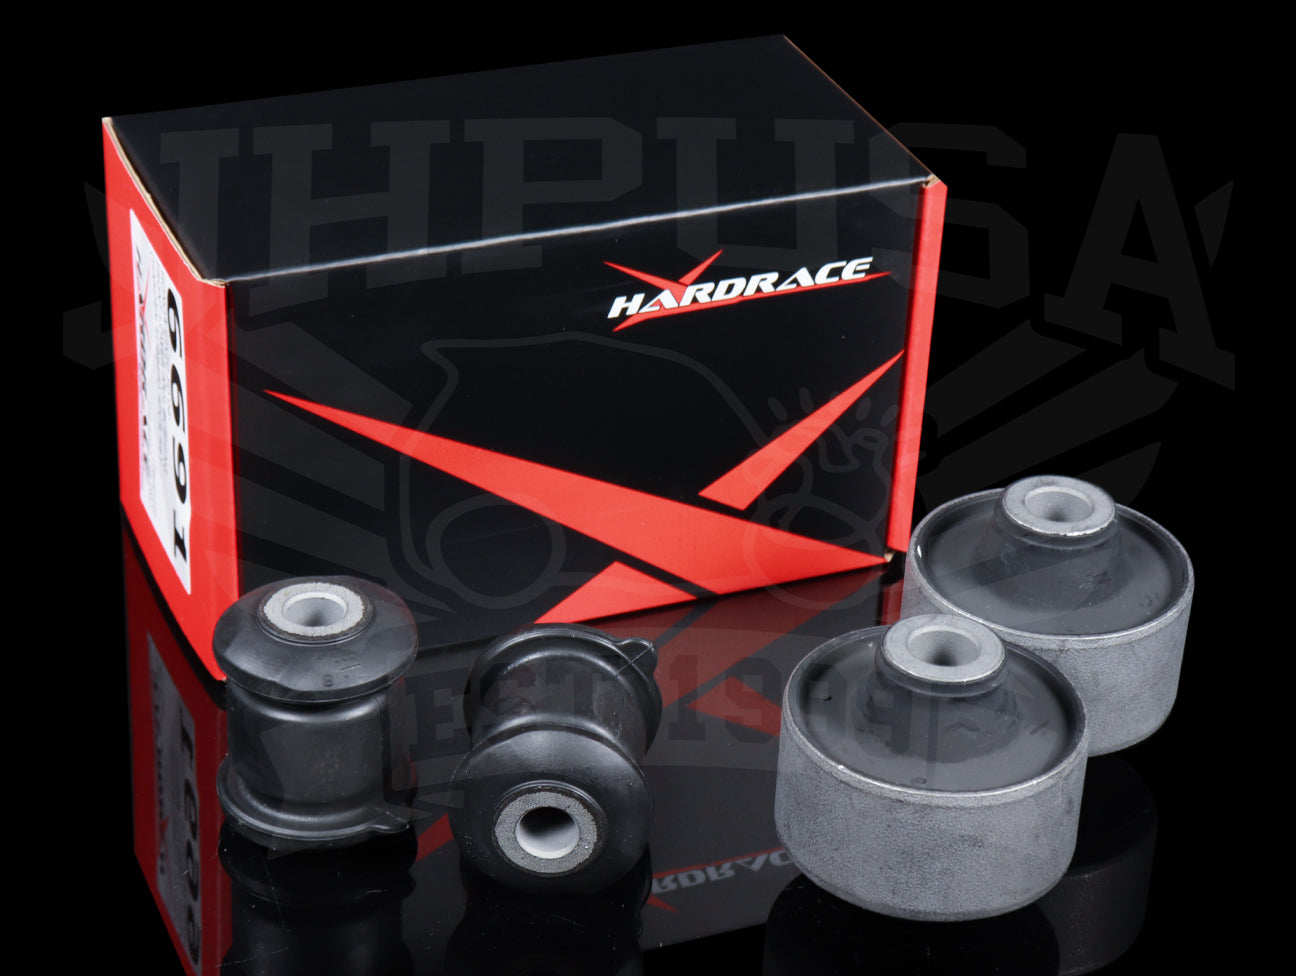 Hardrace Front Lower Arm Bushings (Hard Rubber) - 06-11 Civic